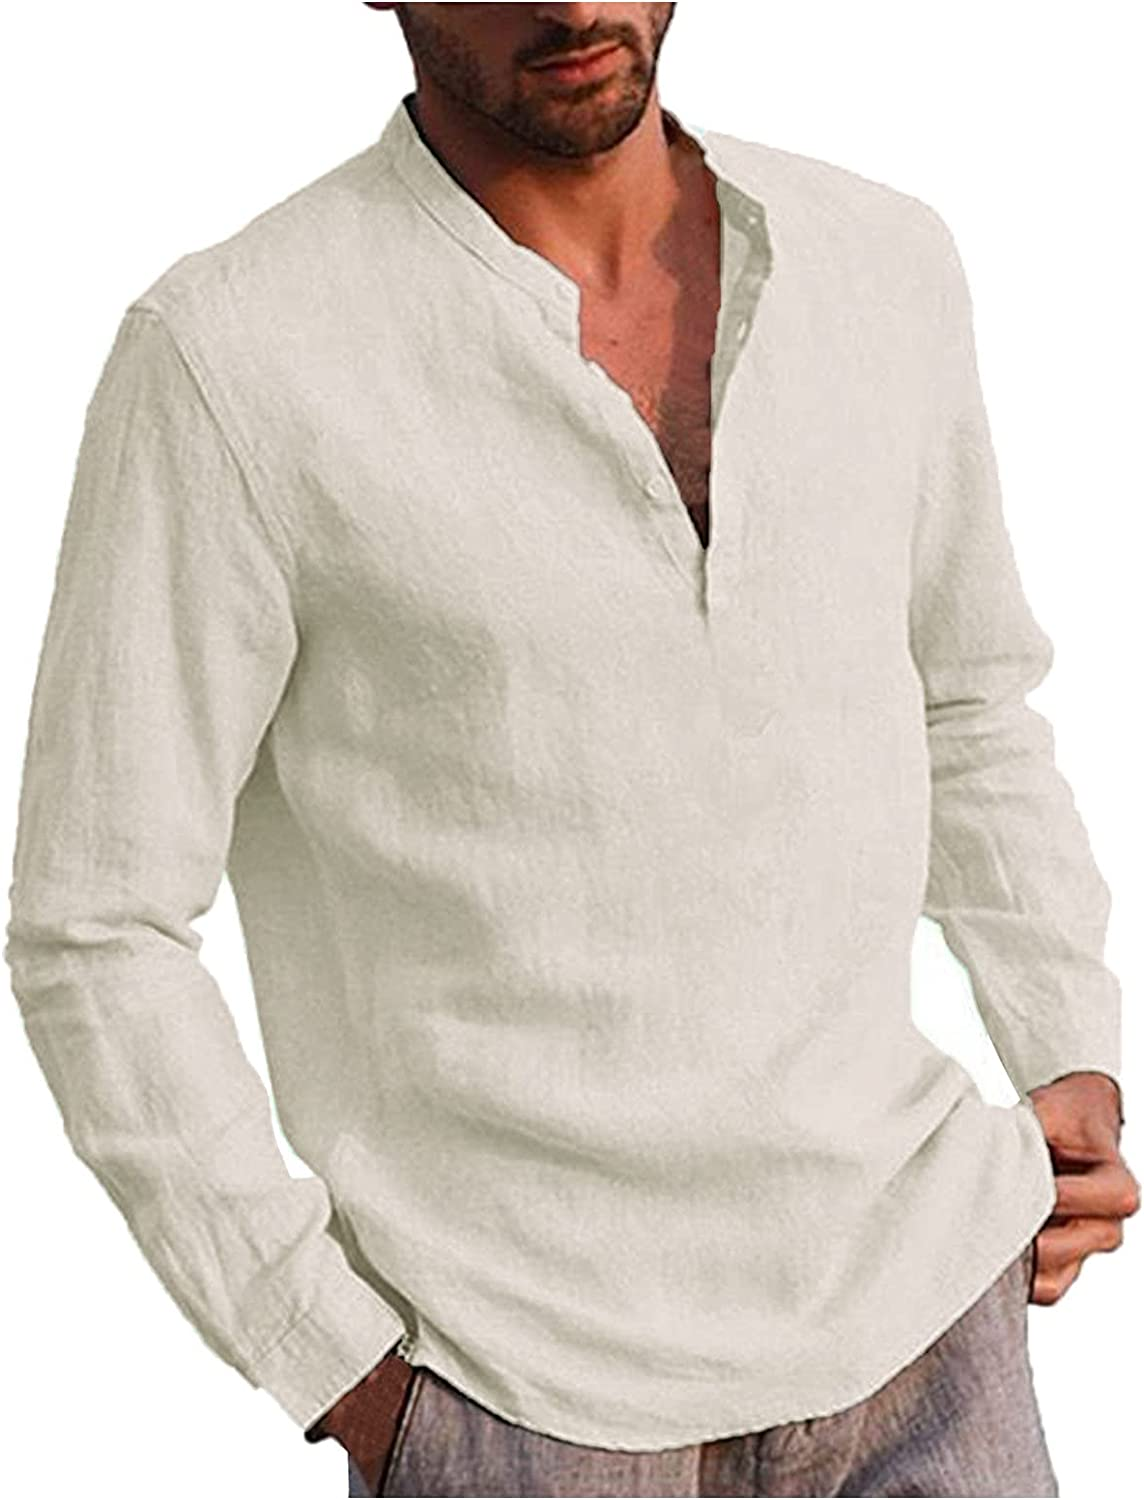 WOCACHI Long Sleeve Shirts For Mens, Fall Henley V Neck Casual Solid Beach T-Shirts Slim Fit Soft Yoga Tops